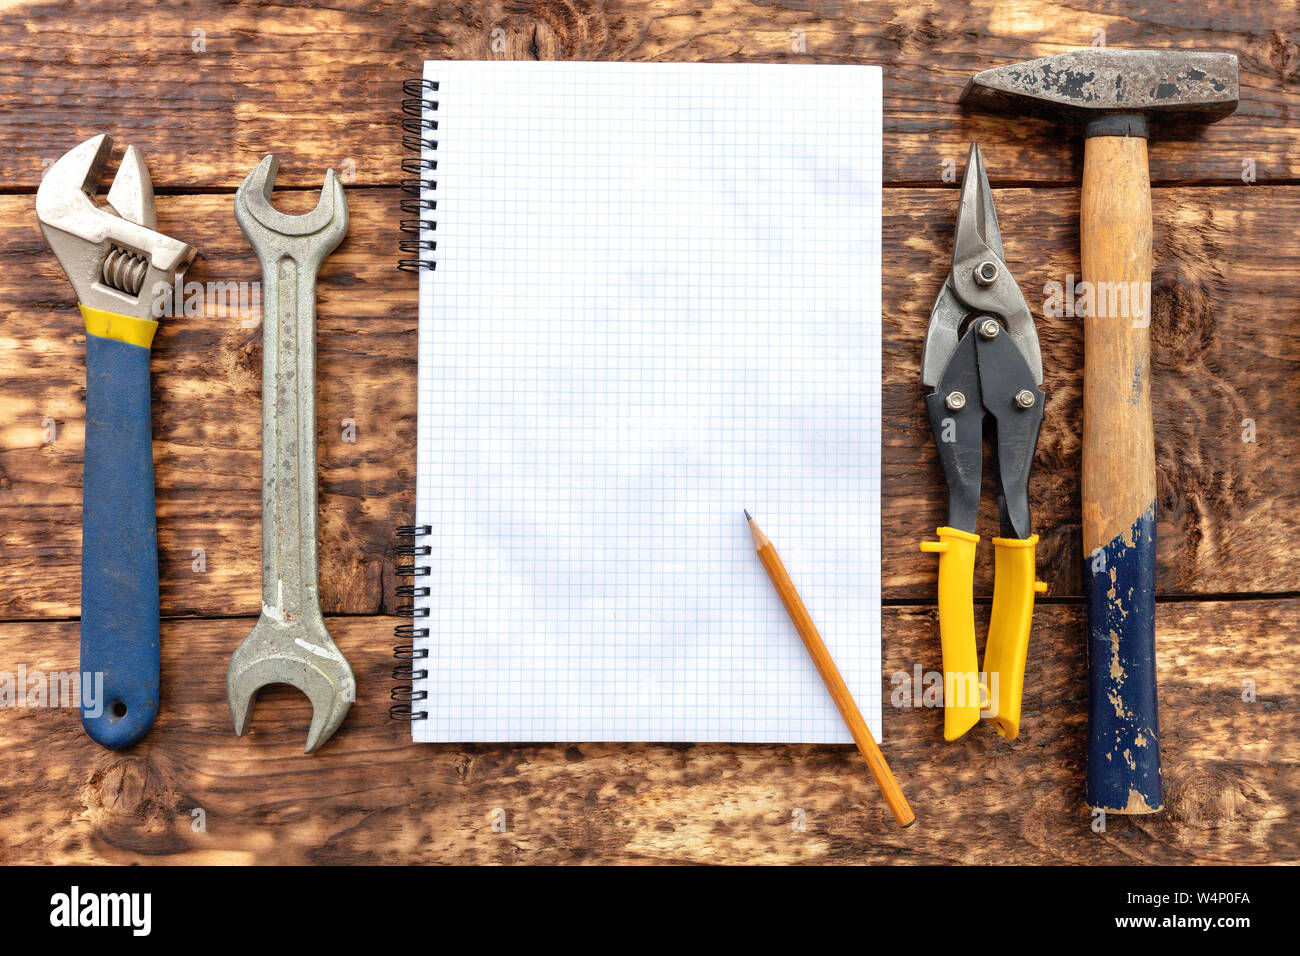 Old Hand Tools Stock Photos & Old Hand Tools Stock Images